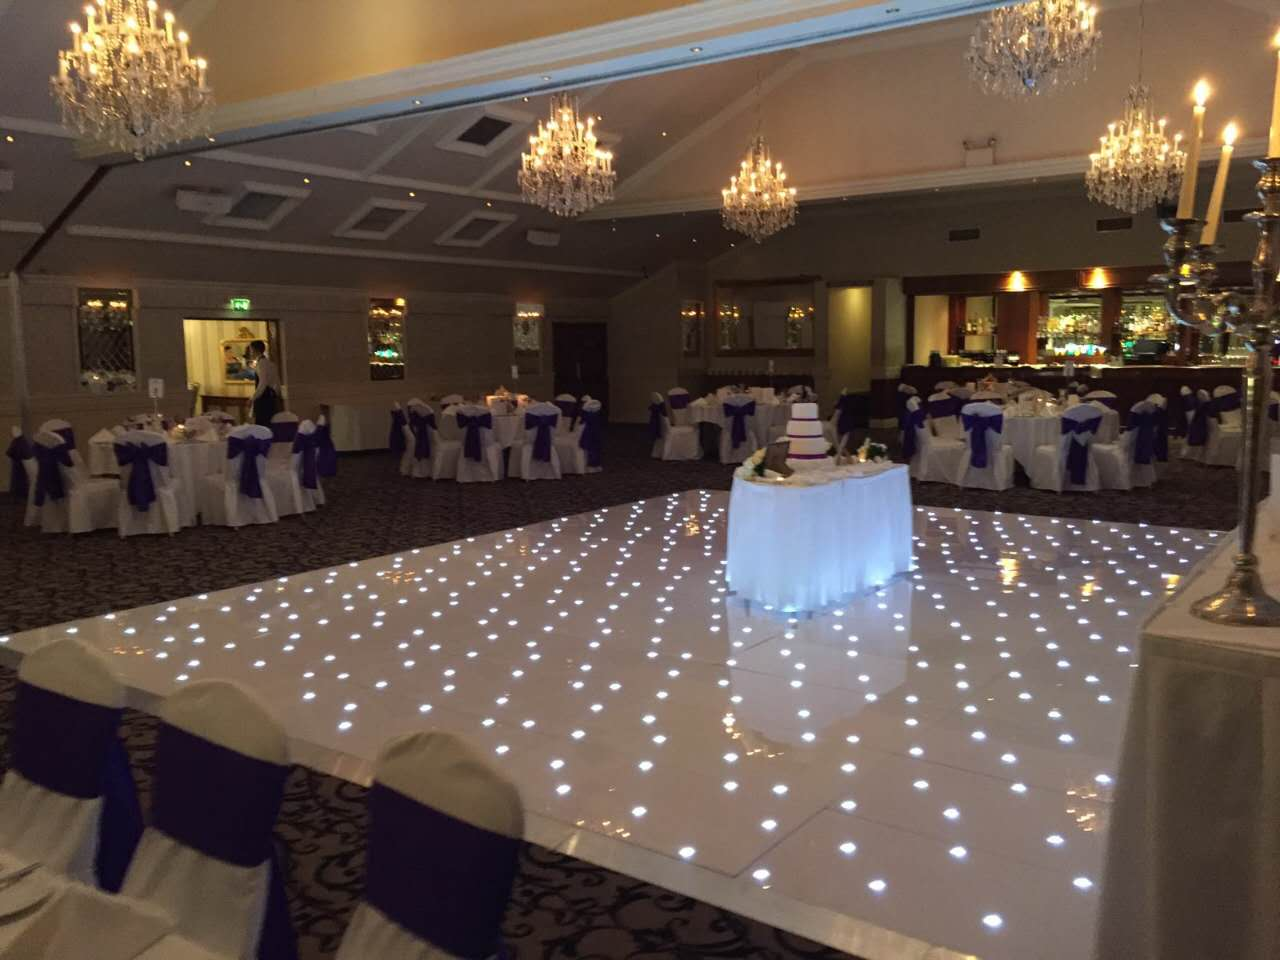 Homeilight 14x14ft light acylic lighting panel starlit dance floor for wedding